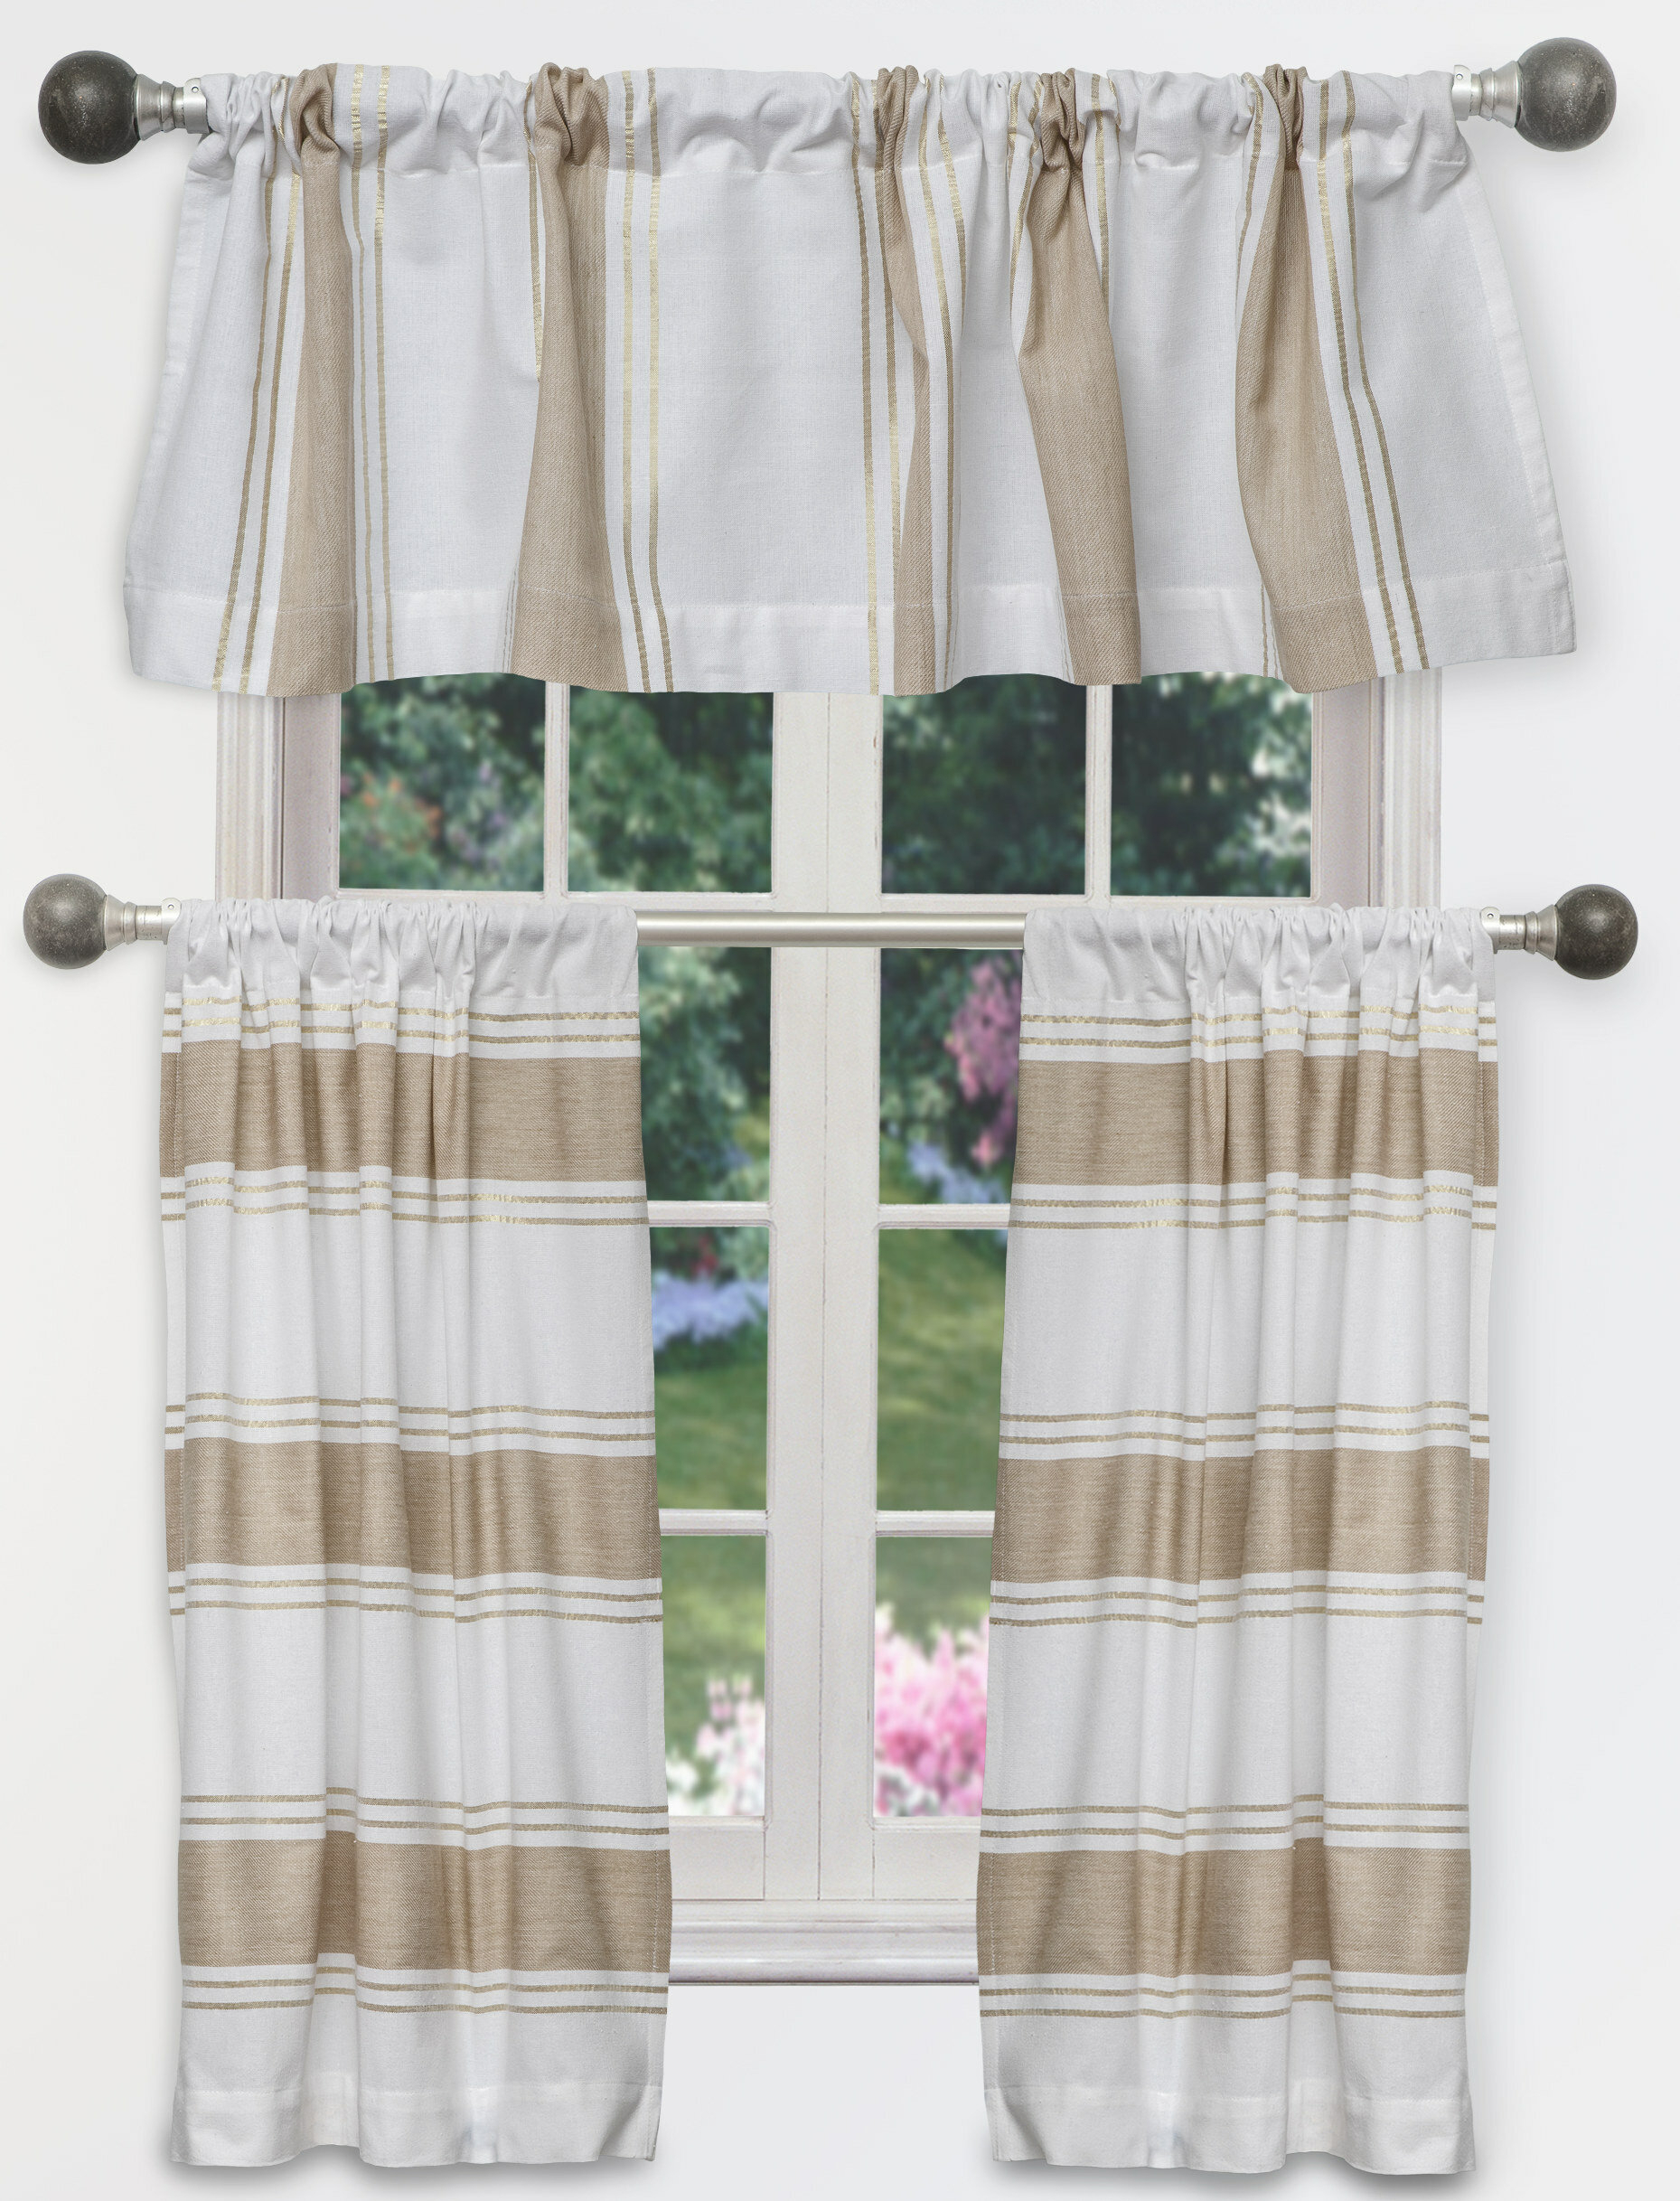 Charlton Home Raci Tier 3 Piece Curtain Set | Wayfair Pertaining To Scroll Leaf 3 Piece Curtain Tier And Valance Sets (View 3 of 20)